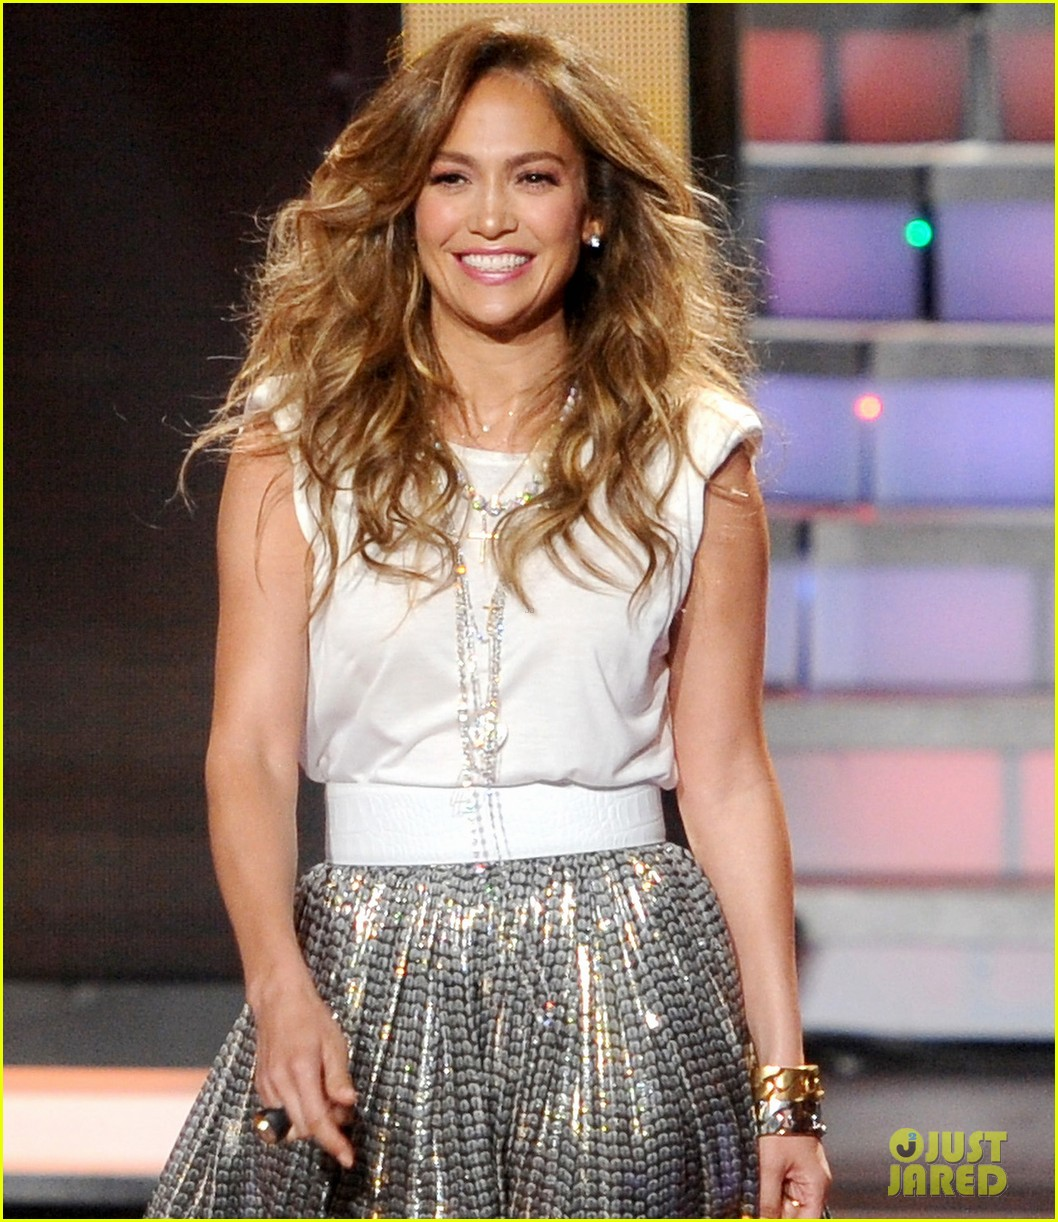 http://2.bp.blogspot.com/-XeREB6xPpAU/T34T6SgIbOI/AAAAAAAALbw/bAr5lXn_6bE/s1600/jennifer-lopez-dance-again-video-preview-04.jpg